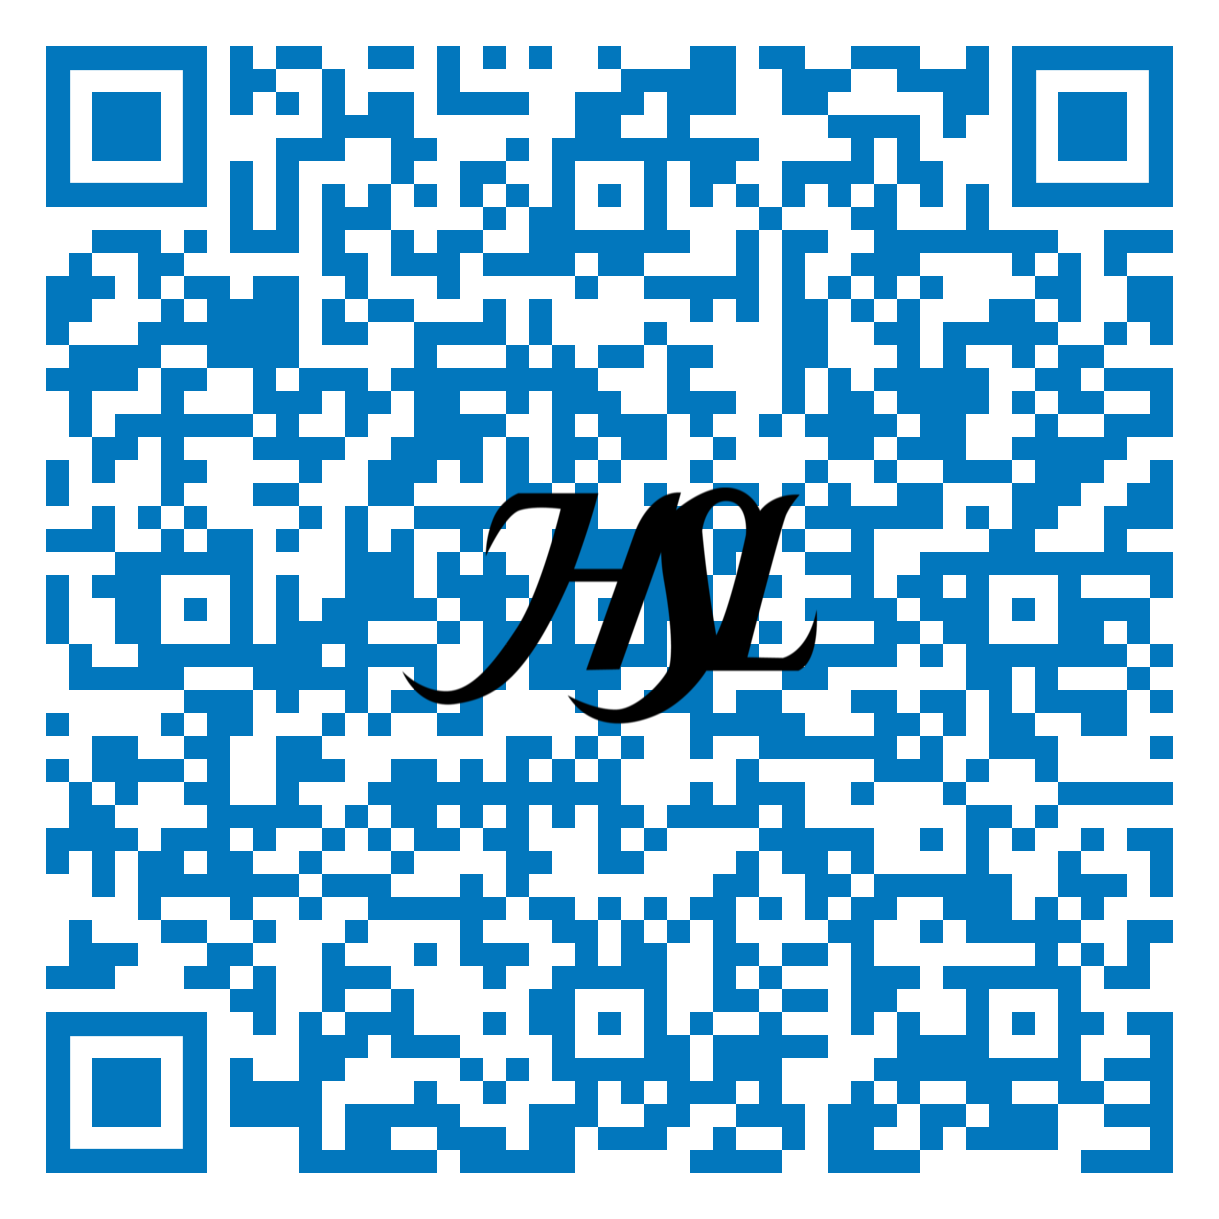 SCAN THIS QR CODE TO MAKE A DONATION TO THE COMMUNITY FOOD BANK OF SOUTHERN ARIZONA